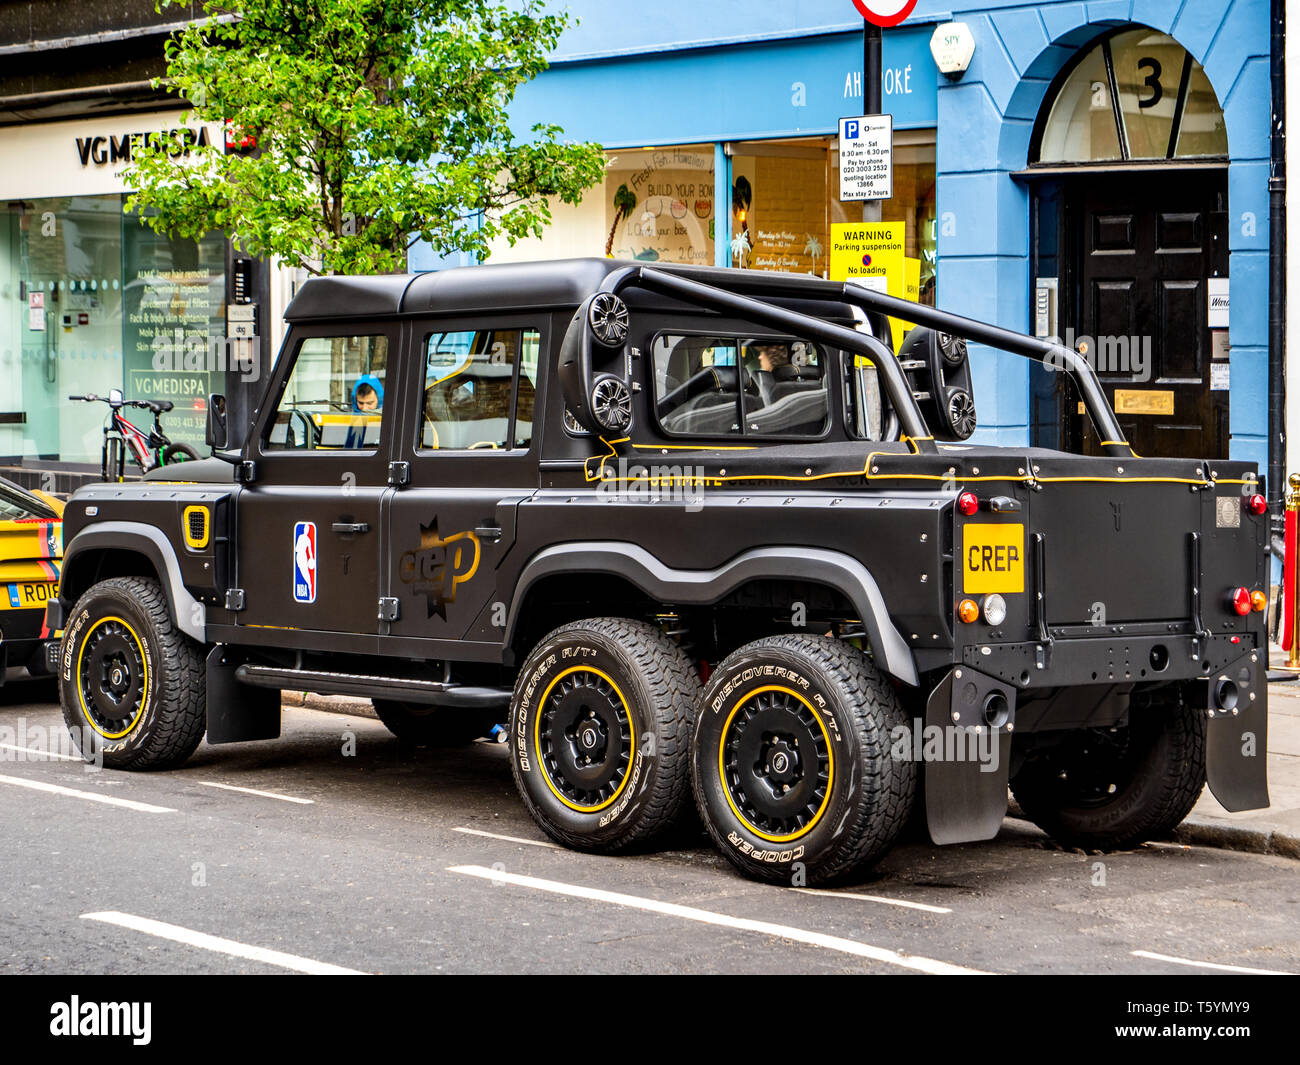 Six Wheel Drive Land Rover - the Crep Flying Huntsman 6x6 Pickup built by the Chelsea Truck Company for the Crep Cleaning Company London - Stock Image